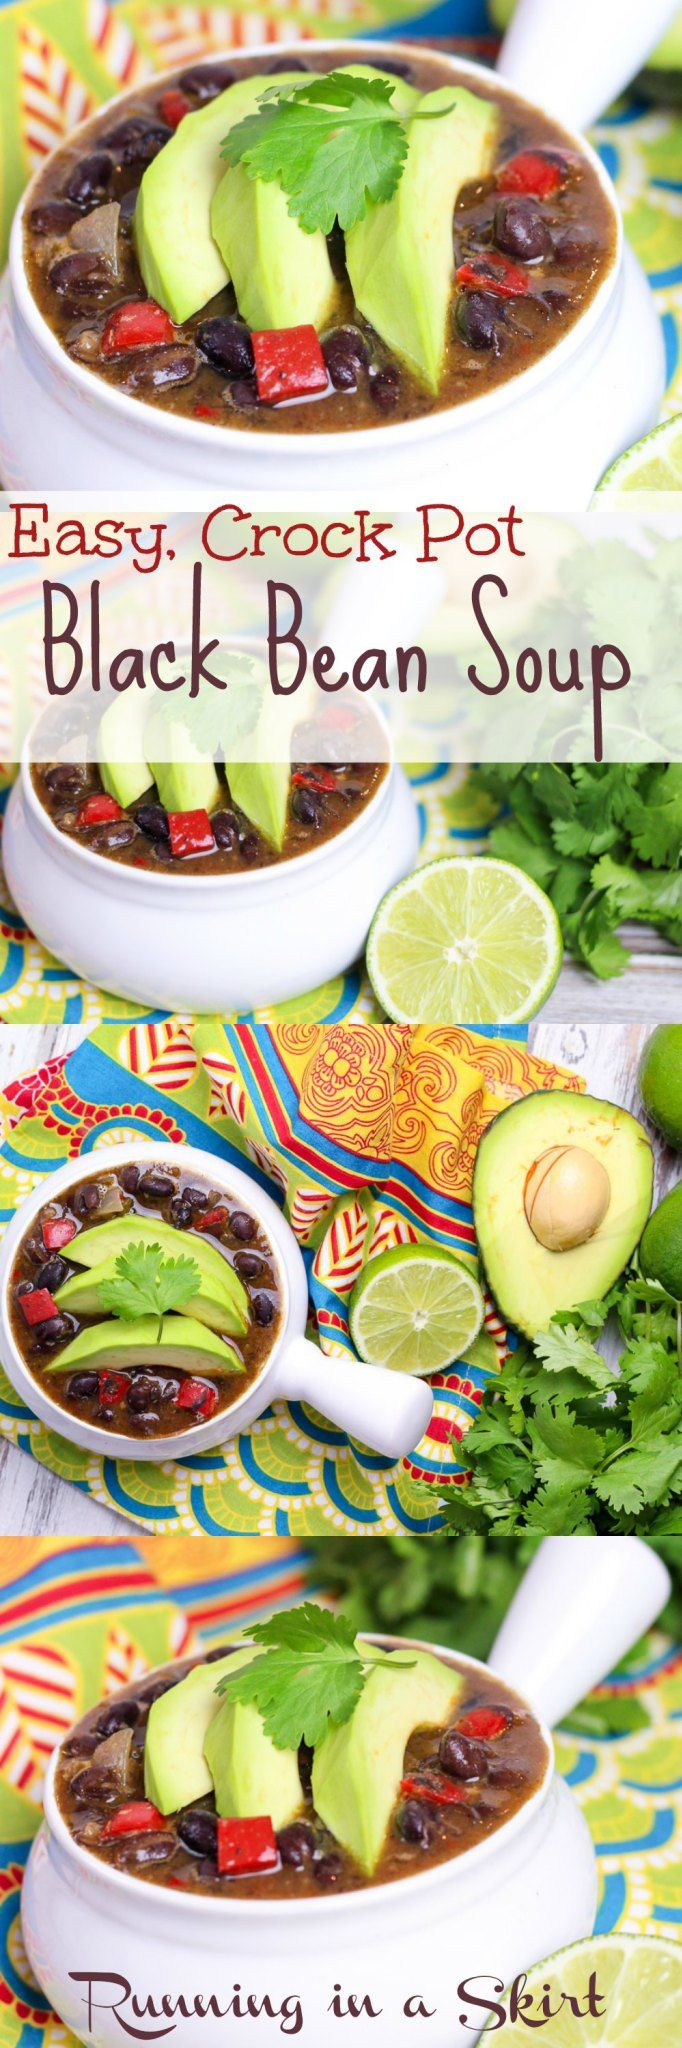 Easy Crock Pot Black Bean Soup recipe